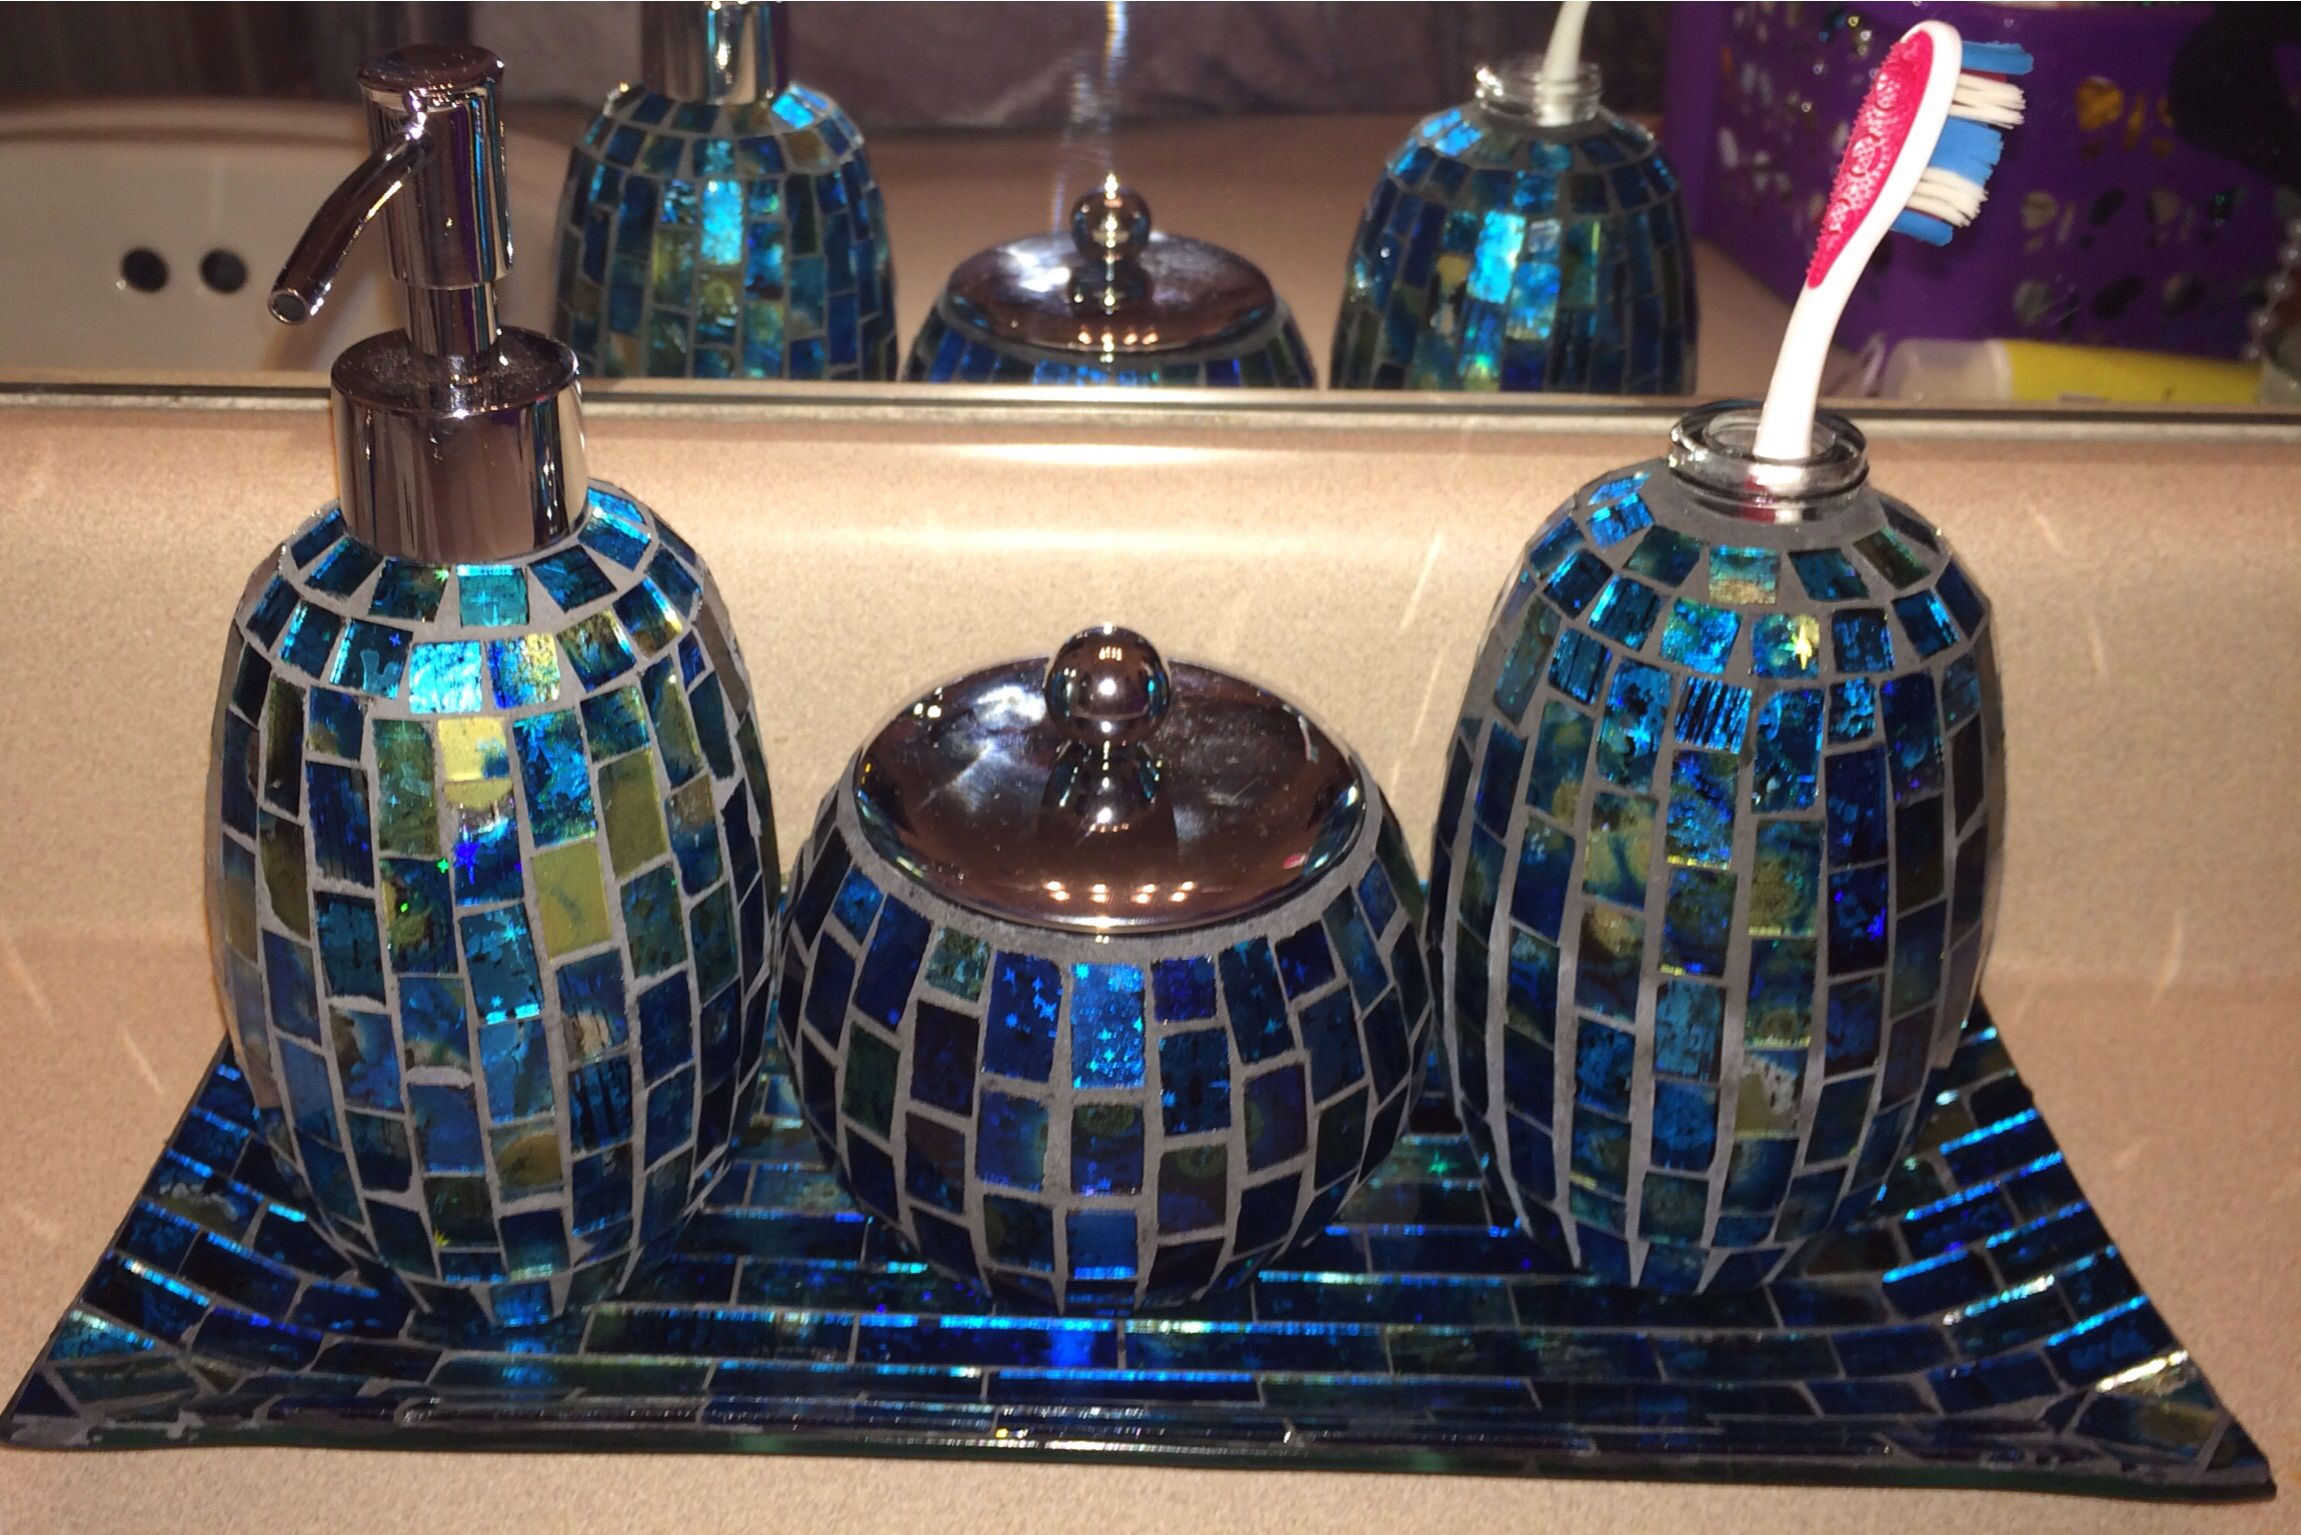 Blue Turquoise And Green Mosaic Bathroom Accessories Set Found At Steinmart